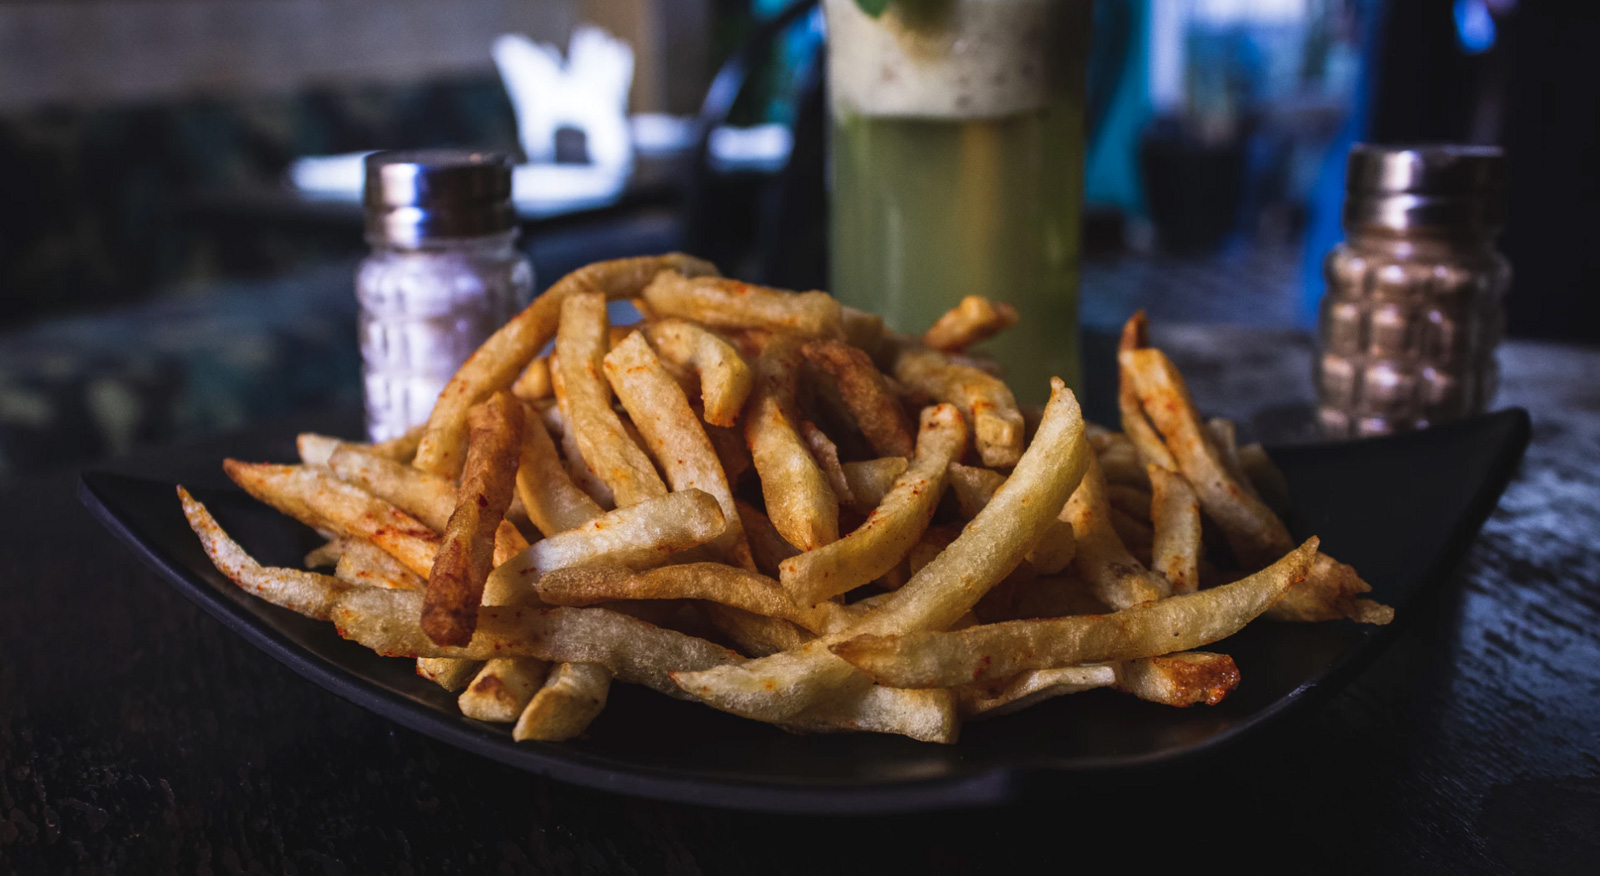 French fries to represent the American standard diet of processed food